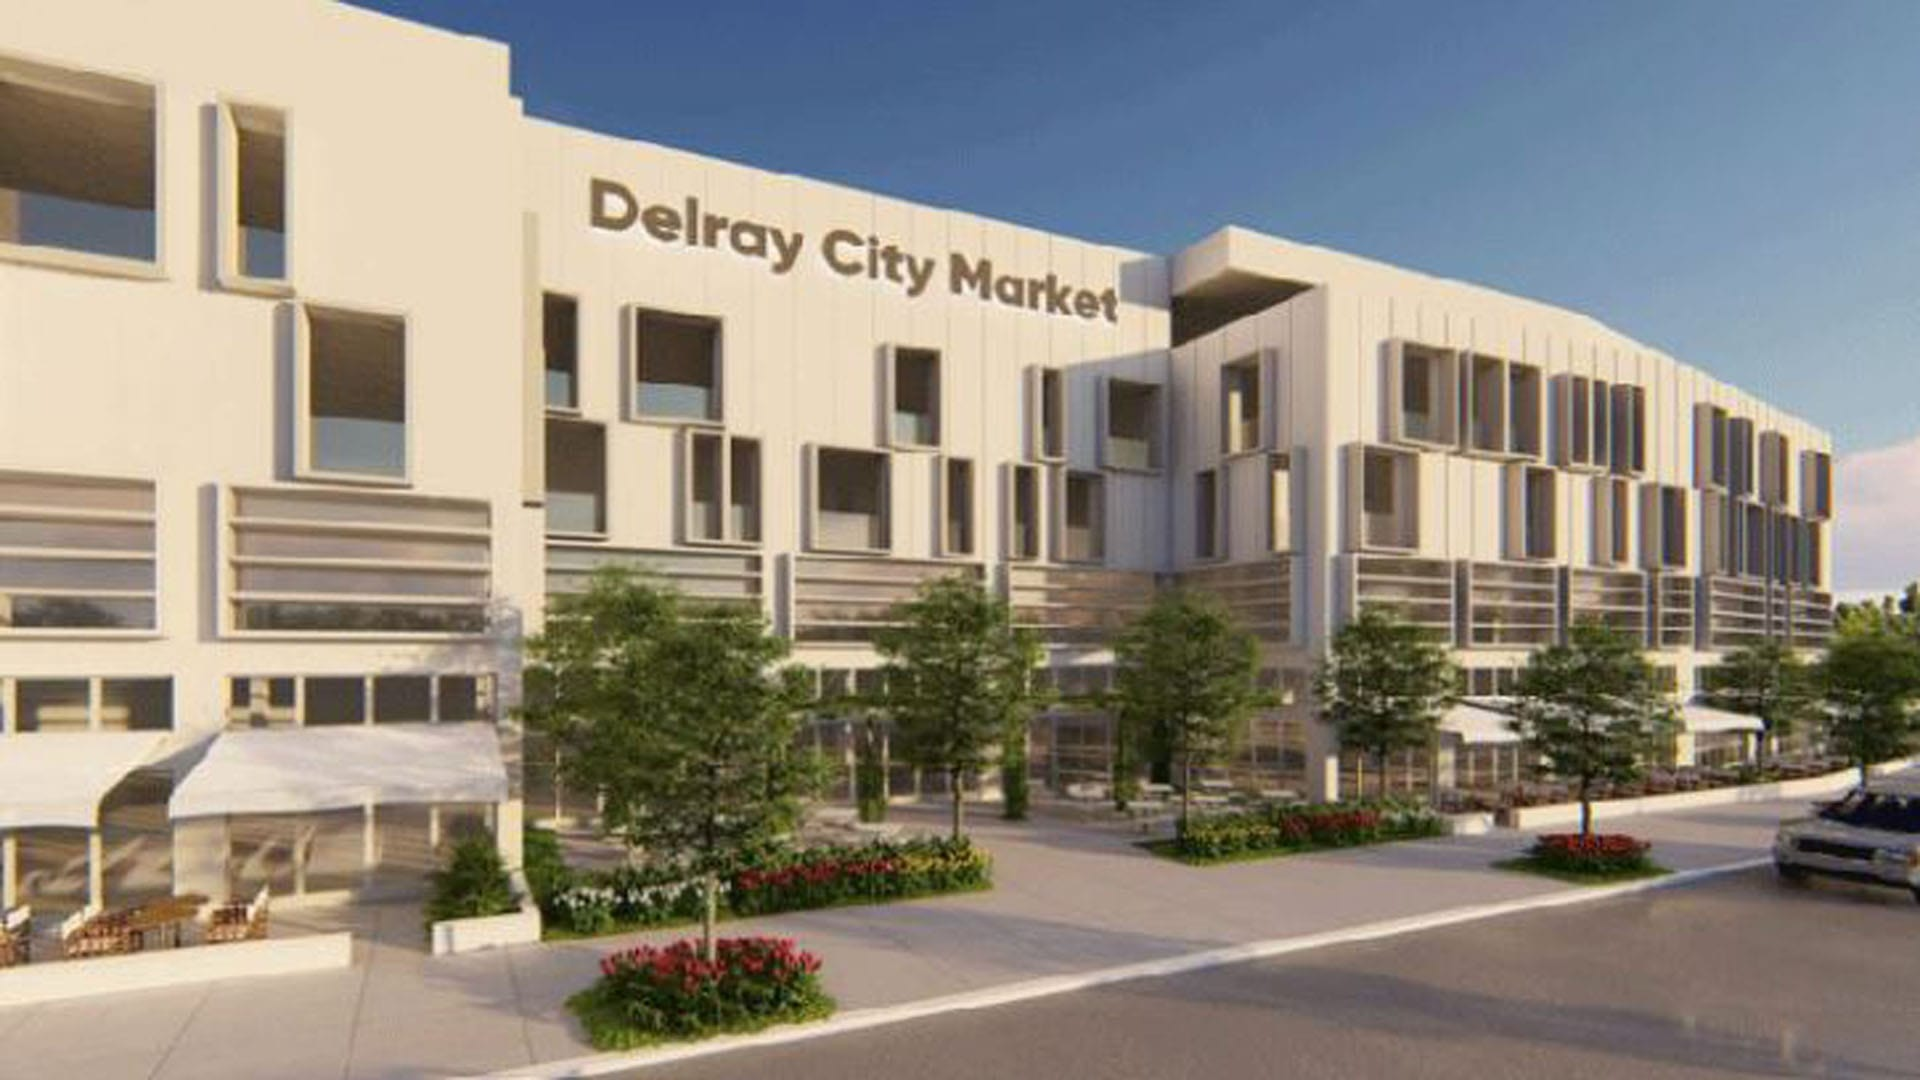 Food Hall Proposed for Downtown Delray Beach